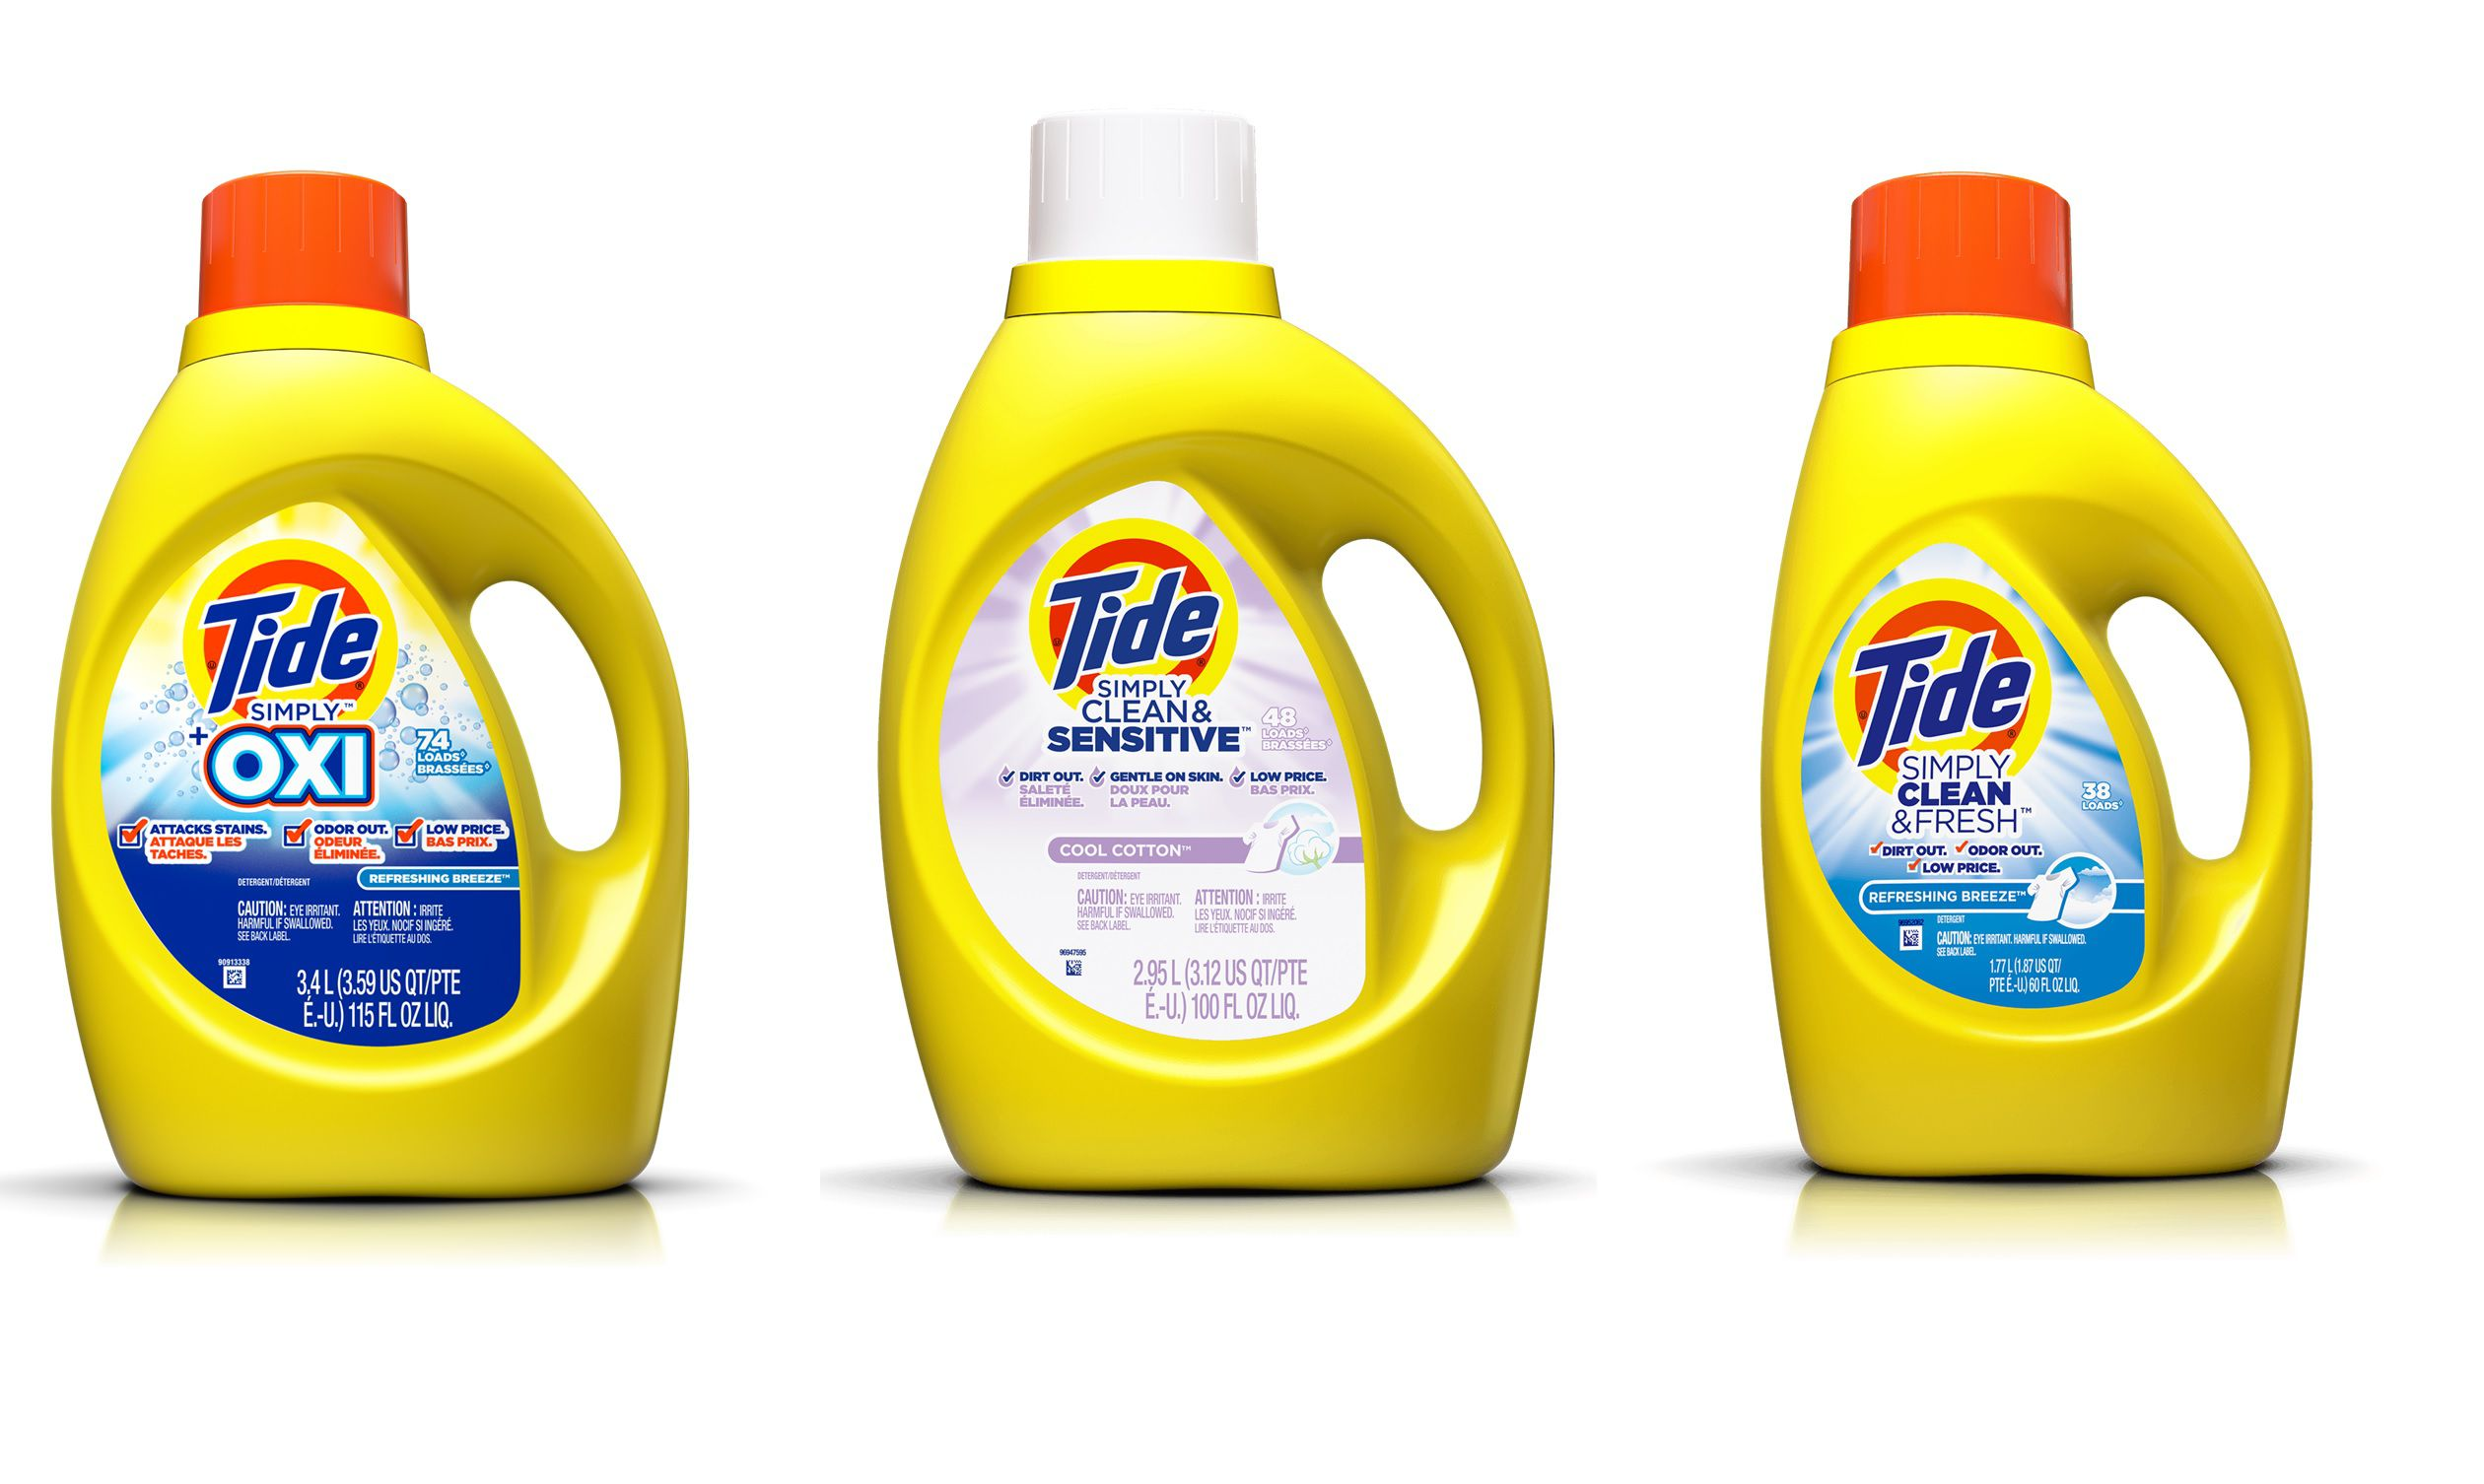 Tide Simply Clean & Fresh Product Review